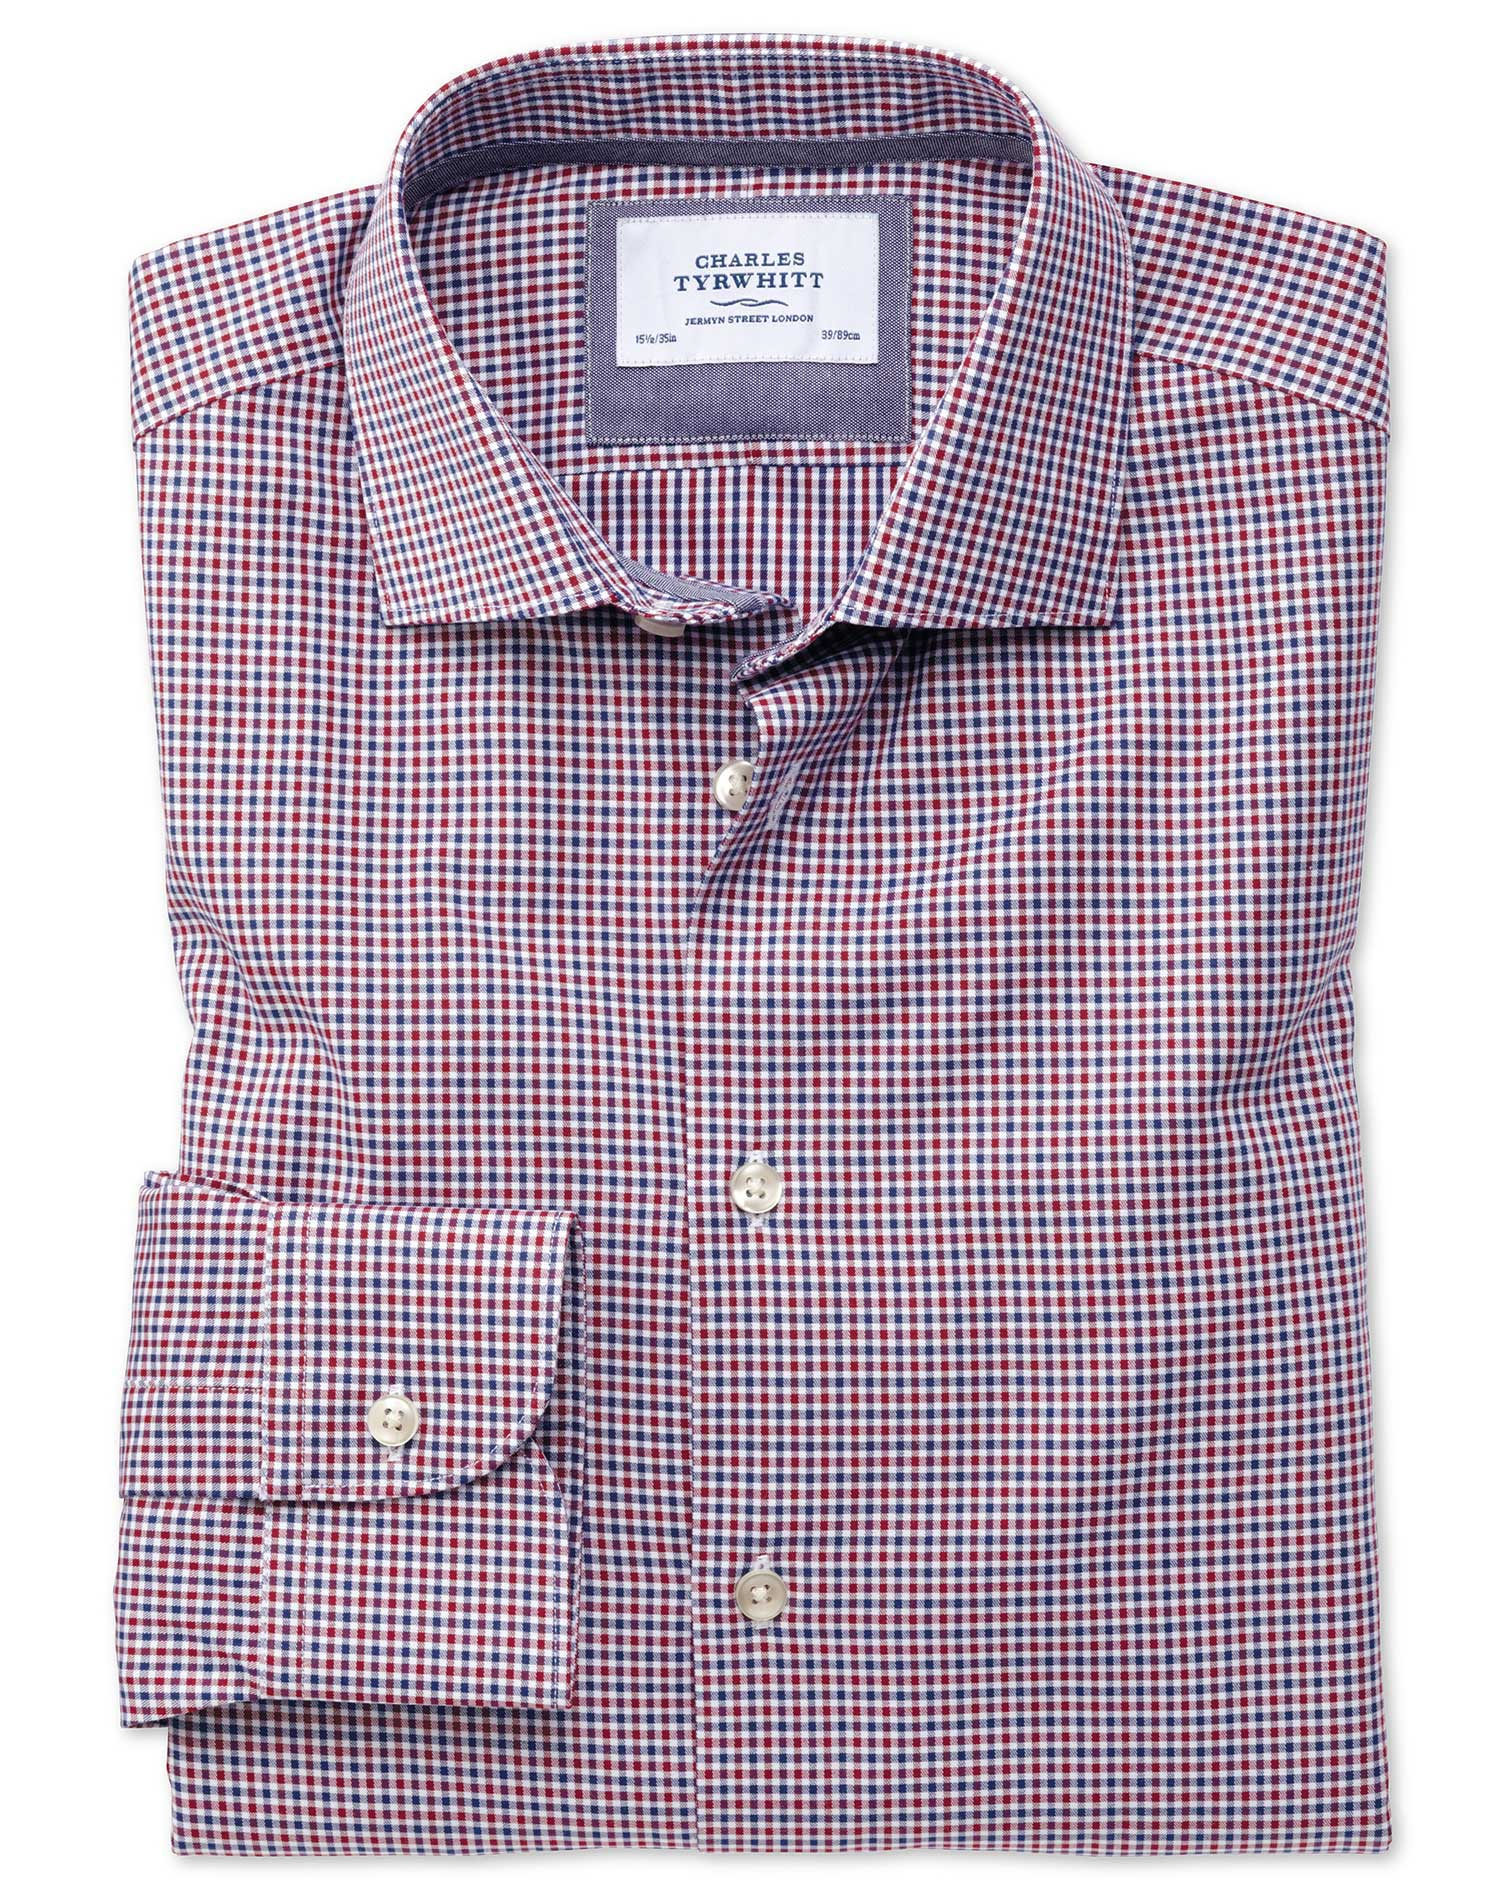 Classic Fit Semi-Cutaway Business Casual Gingham Red and Navy Cotton Formal Shirt Single Cuff Size 1